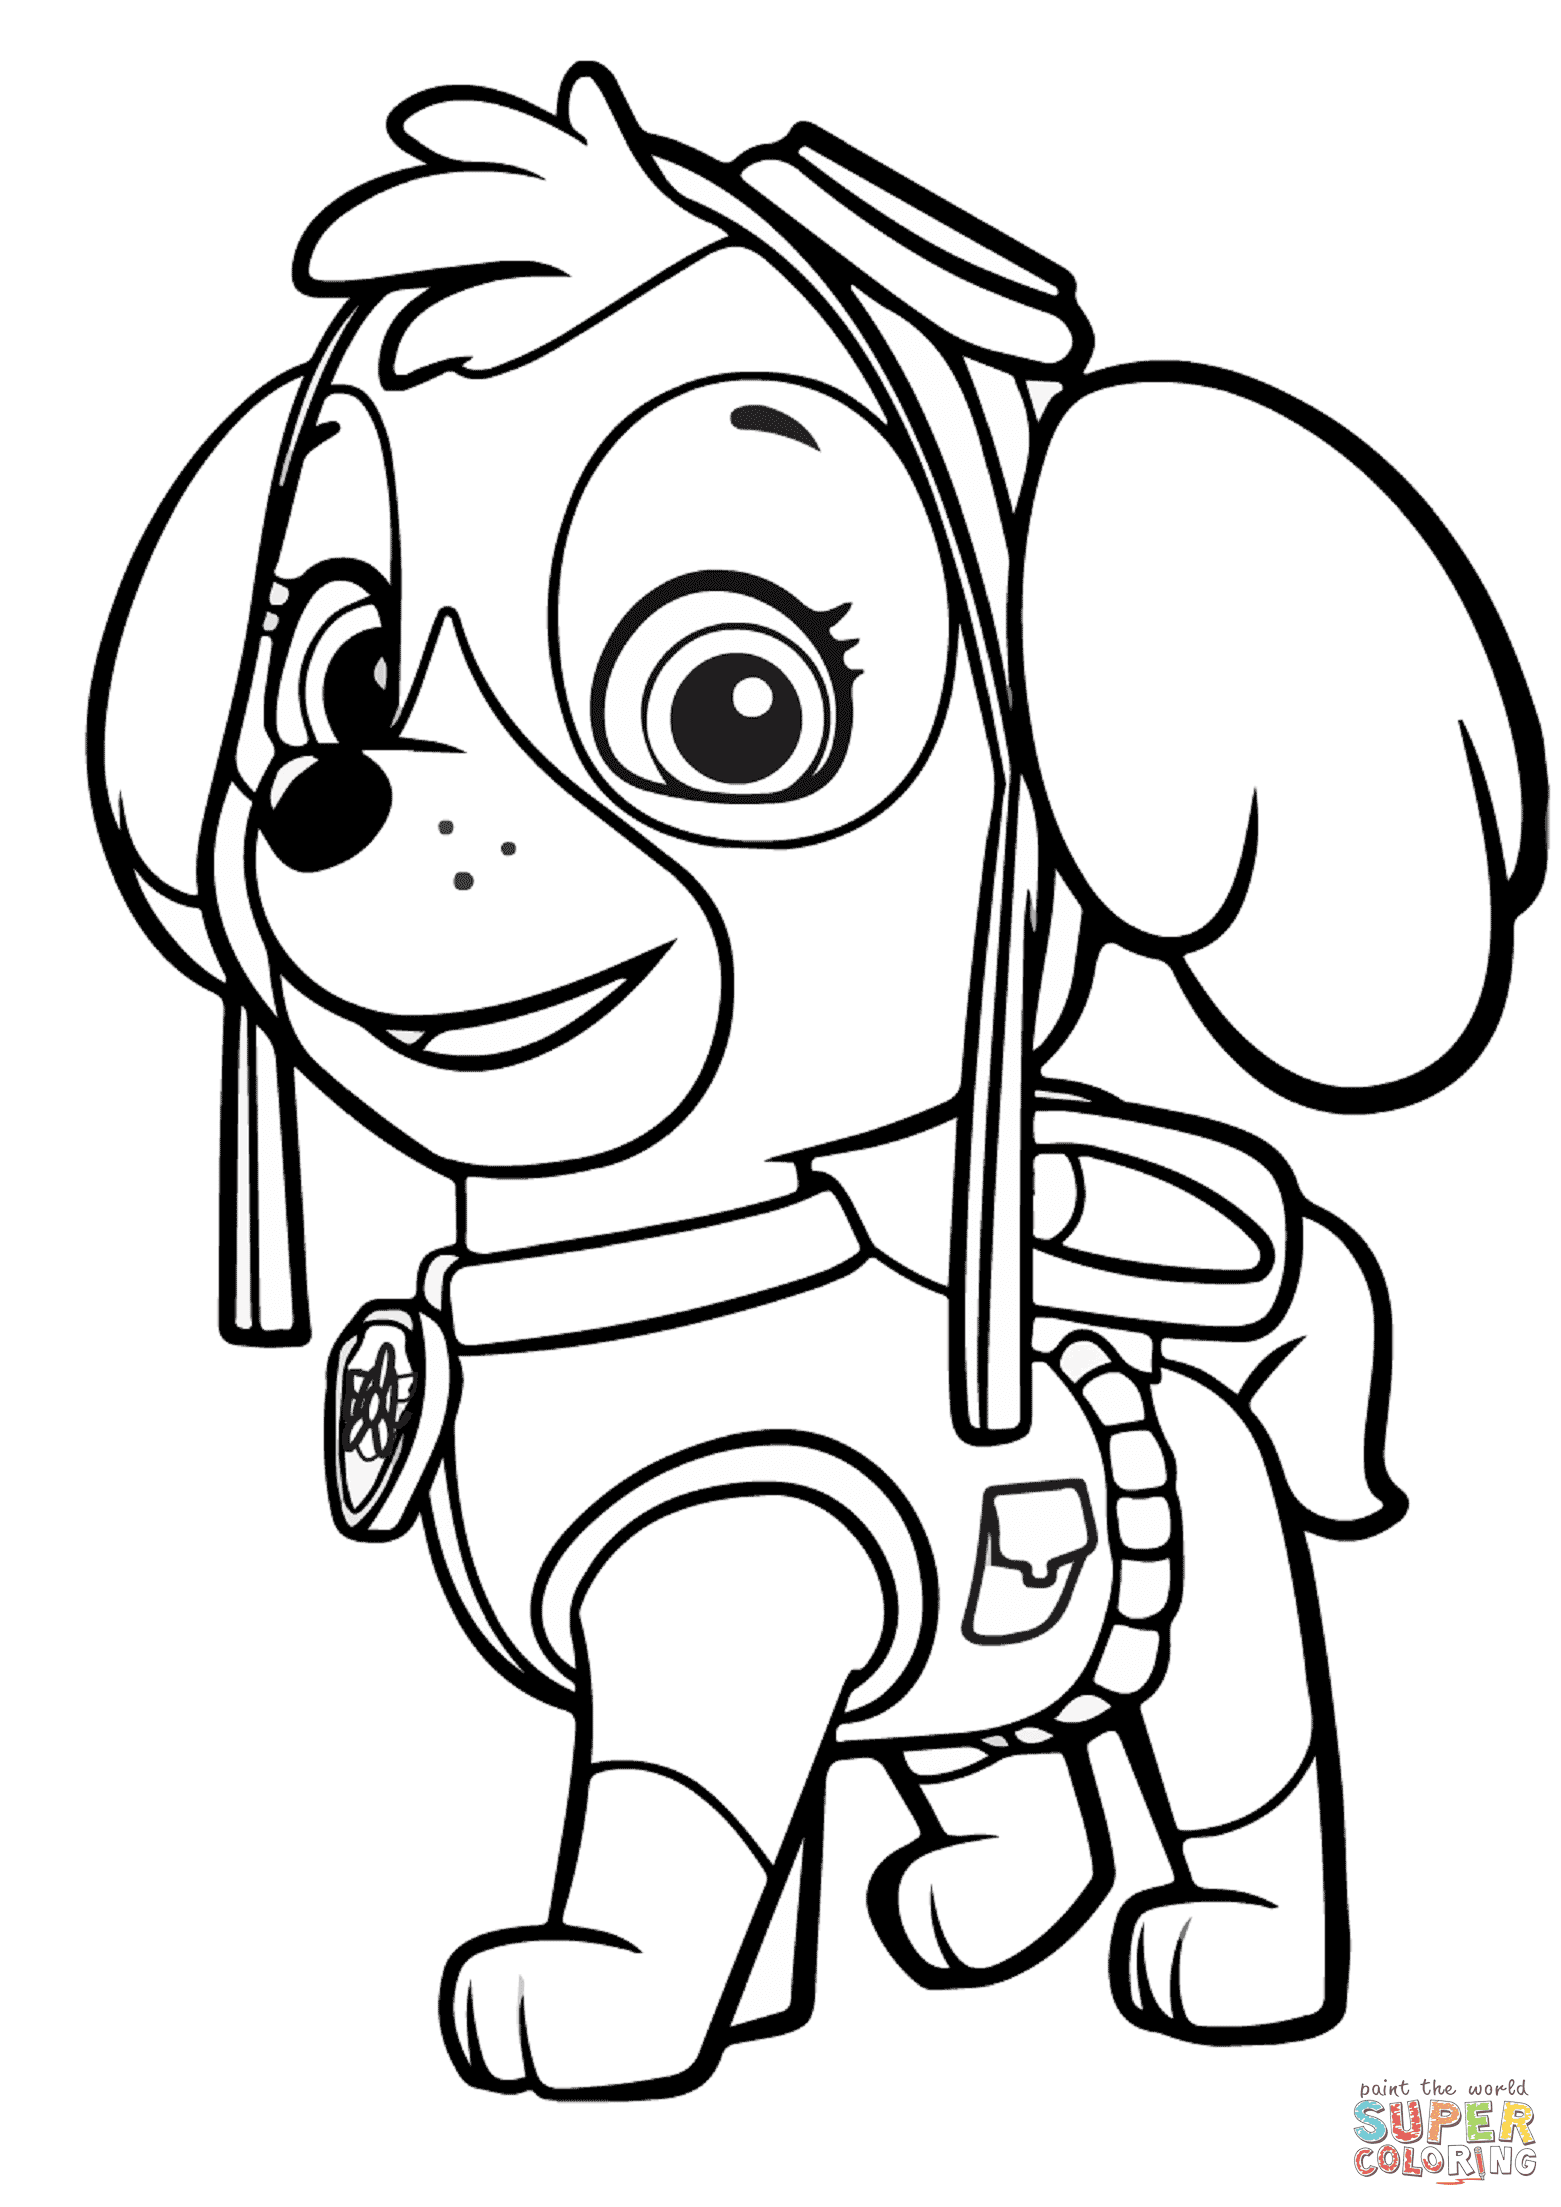 Coloring Pages Pdf | Free download on ClipArtMag